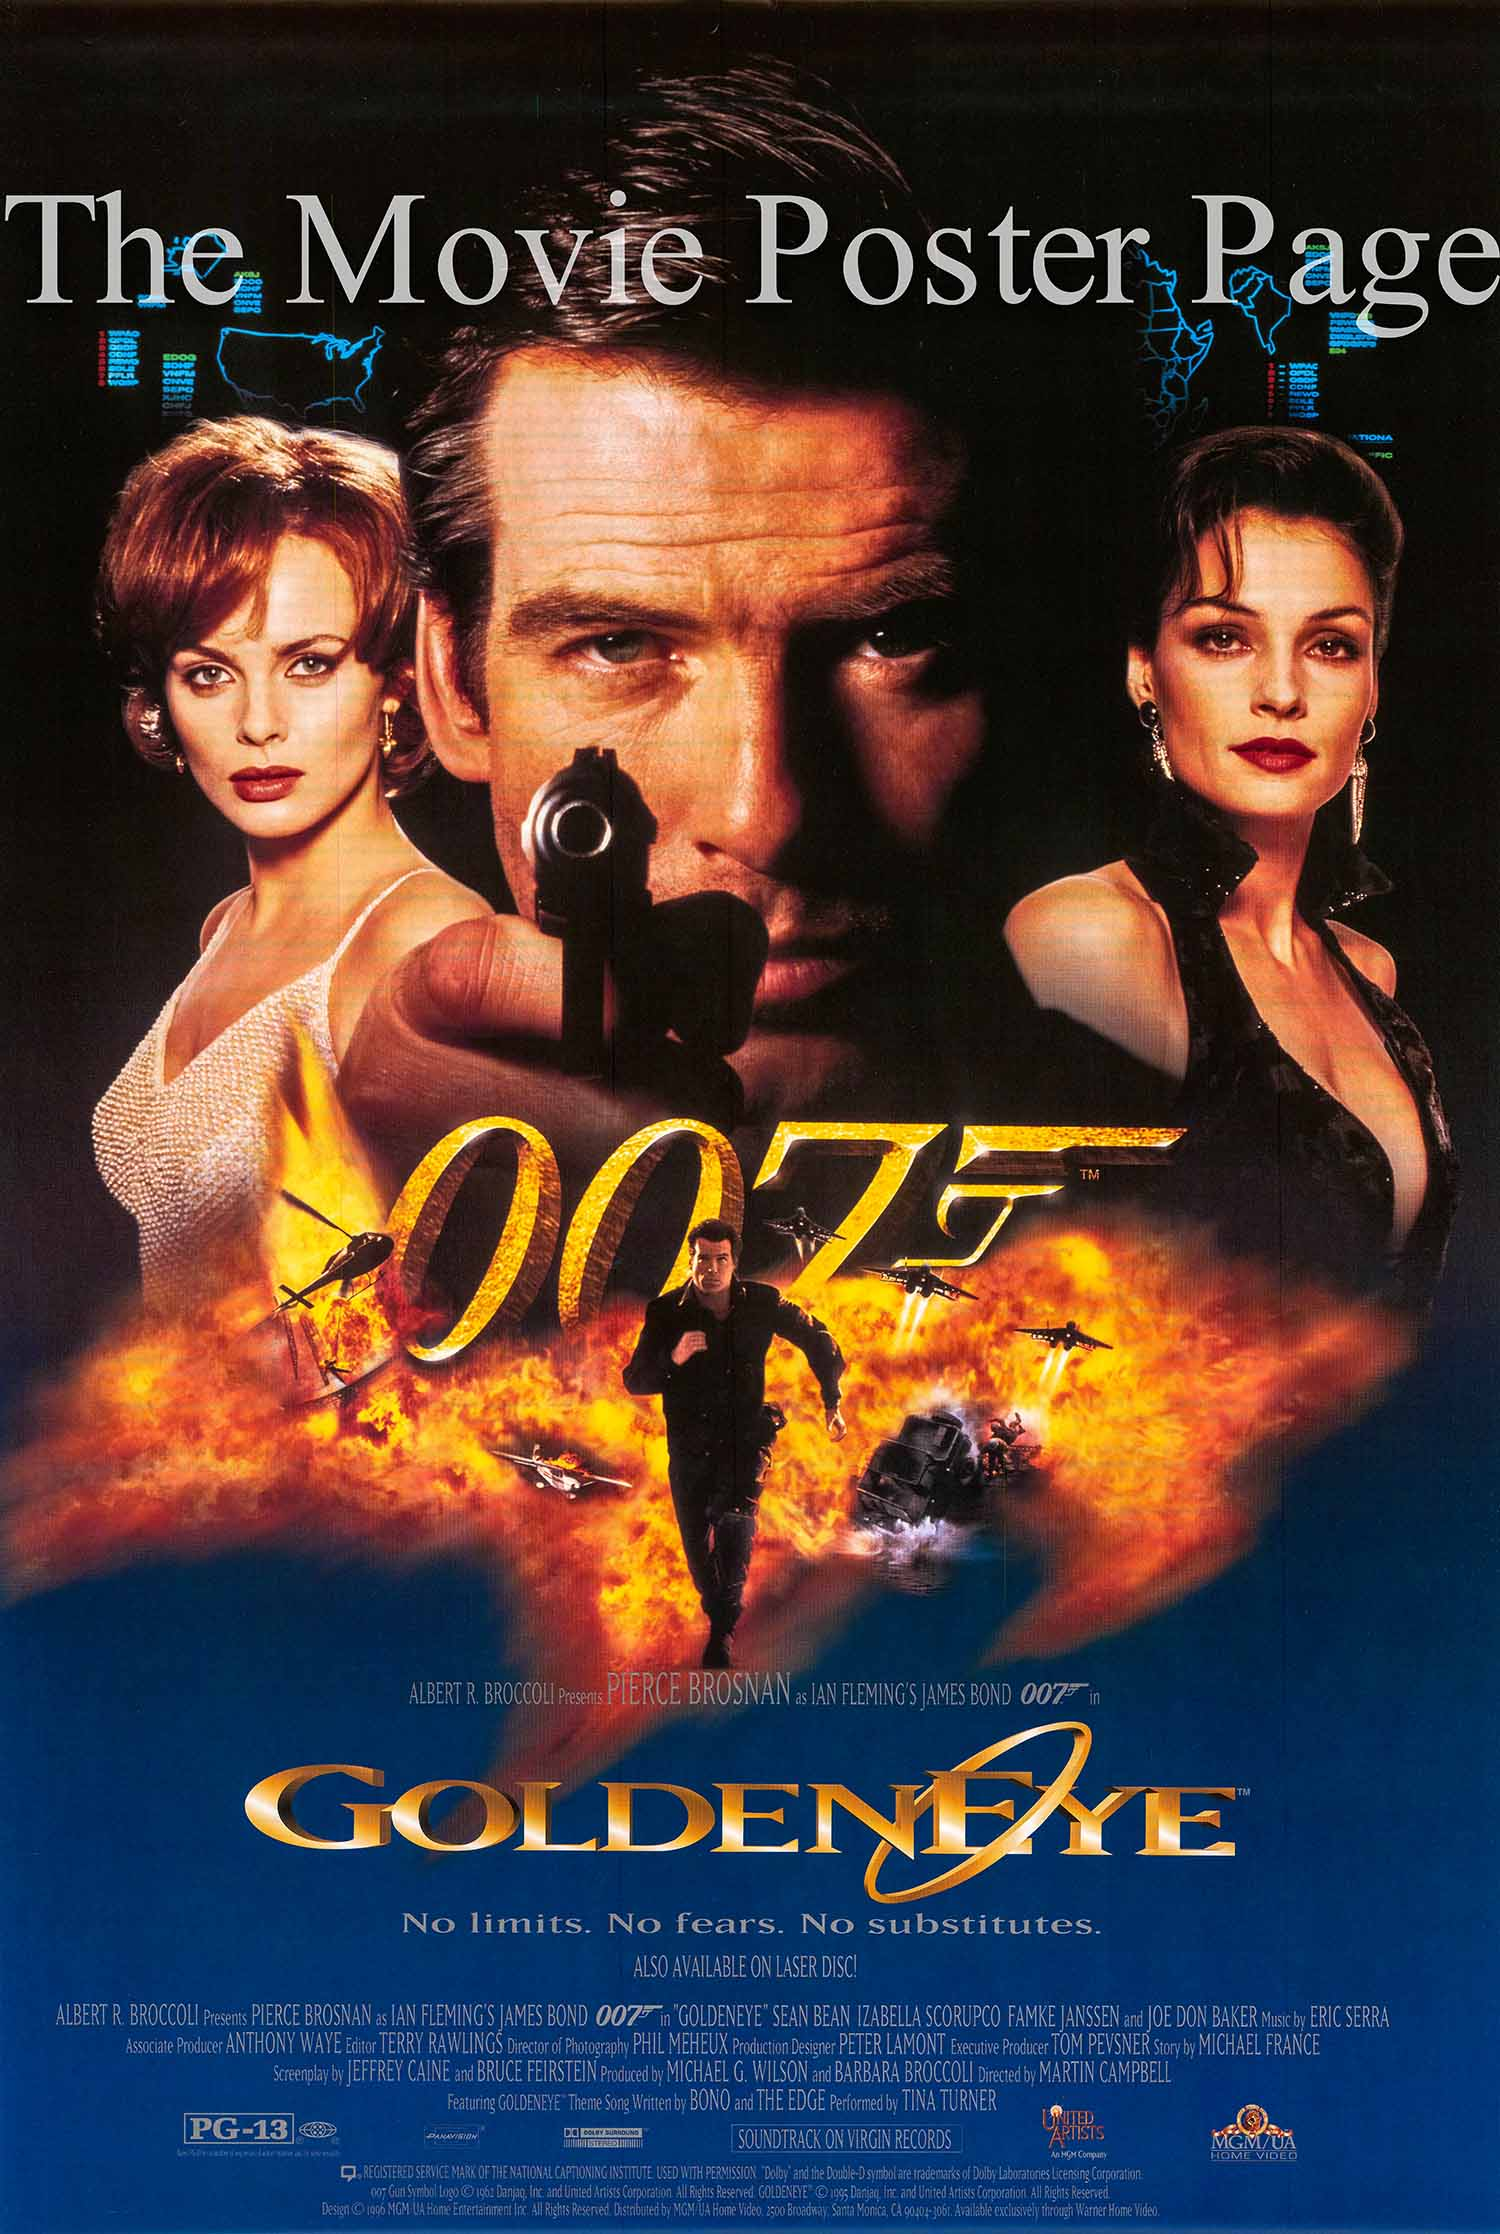 Pictured is a US video poster for the 1995 Martin Campbell film Goldeneye, starring Pierce Brosnan.